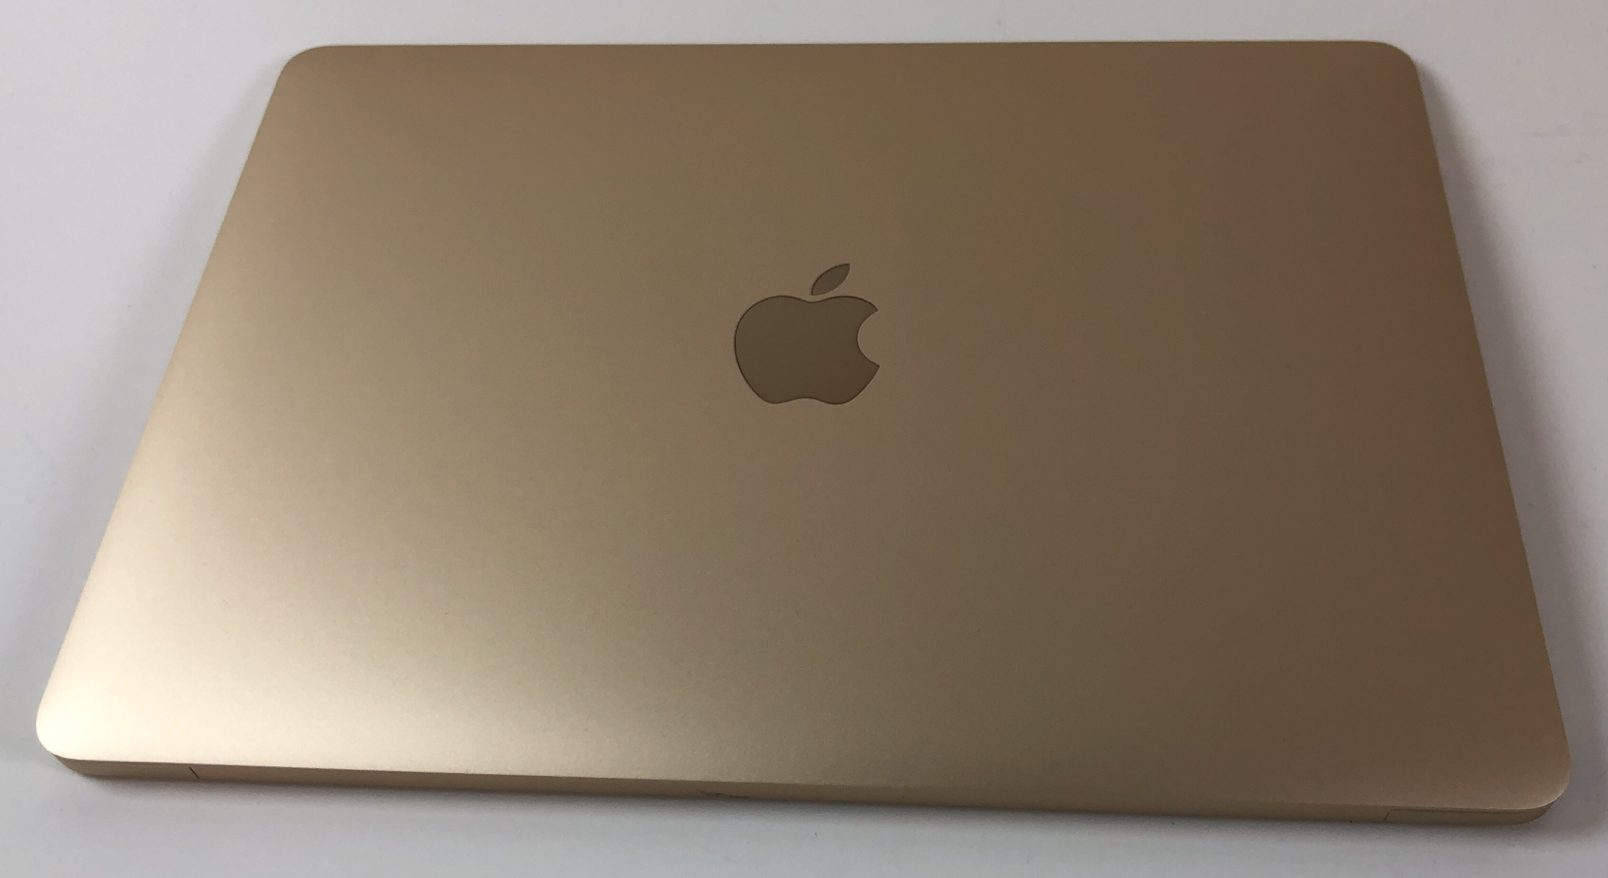 "MacBook 12"" Early 2016 (Intel Core m5 1.2 GHz 8 GB RAM 512 GB SSD), Gold, Intel Core m5 1.2 GHz, 8 GB RAM, 512 GB SSD, Kuva 2"